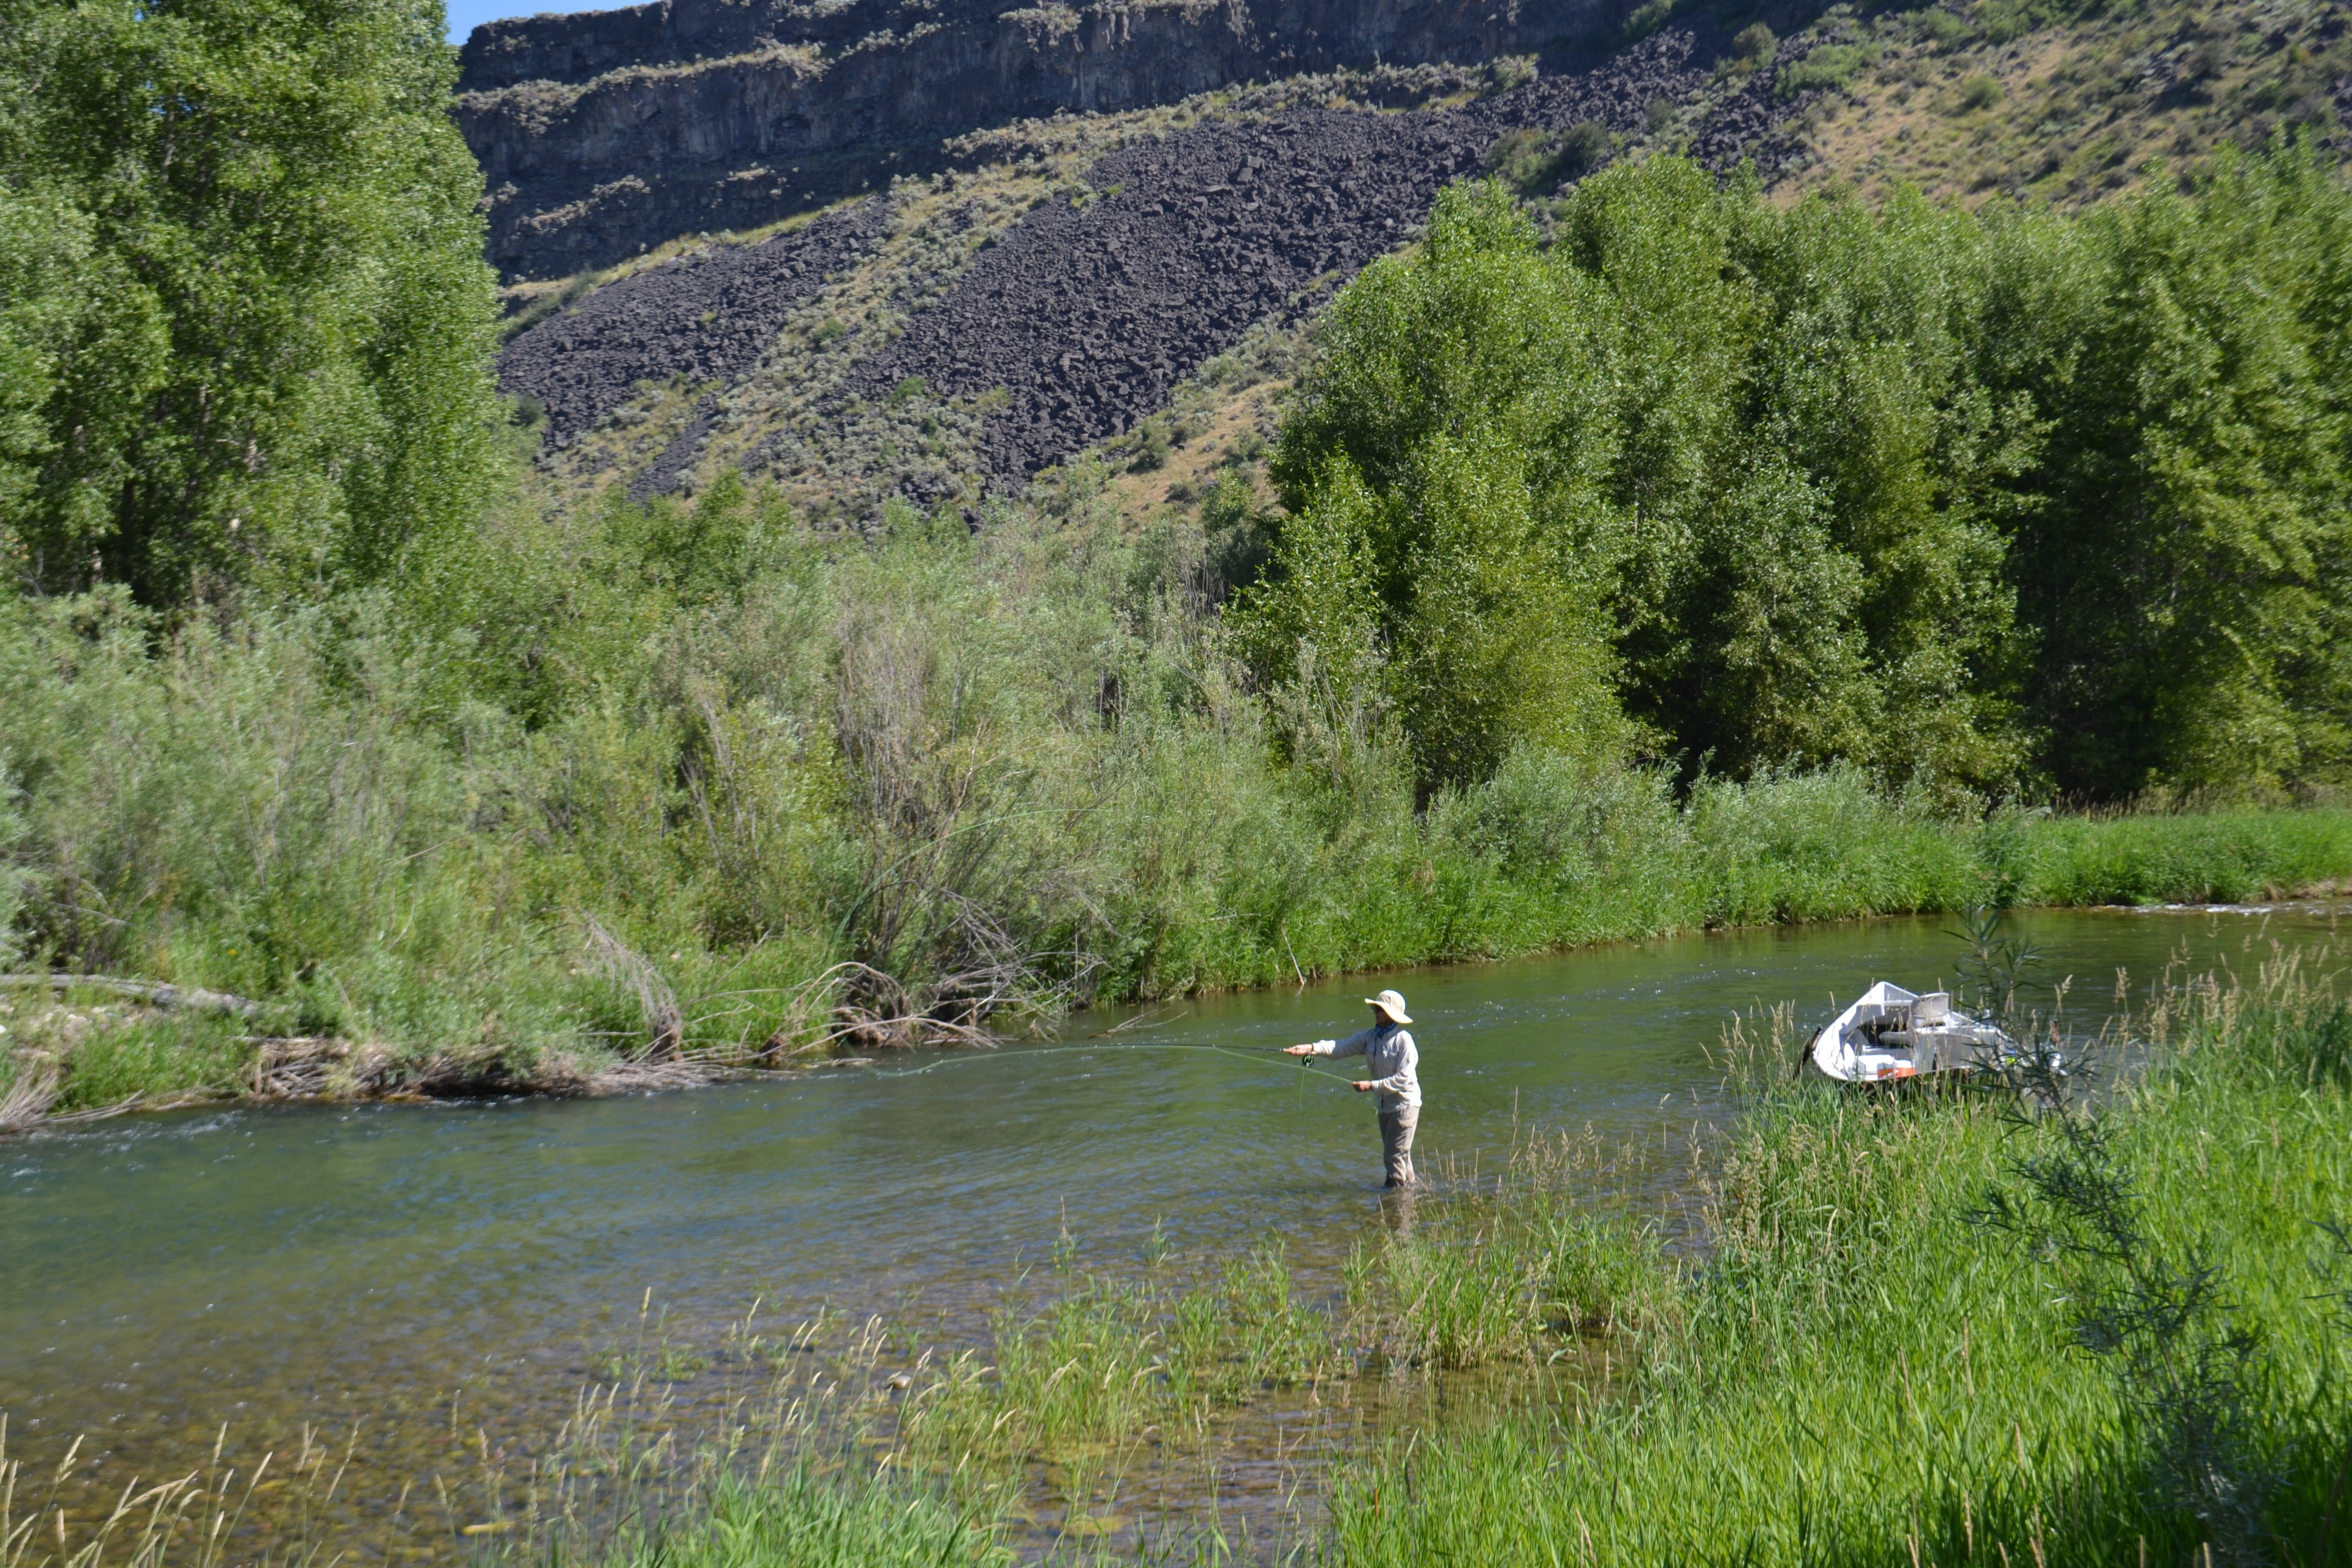 Fly fishing report south fork of the snake river for South fork snake river fishing report